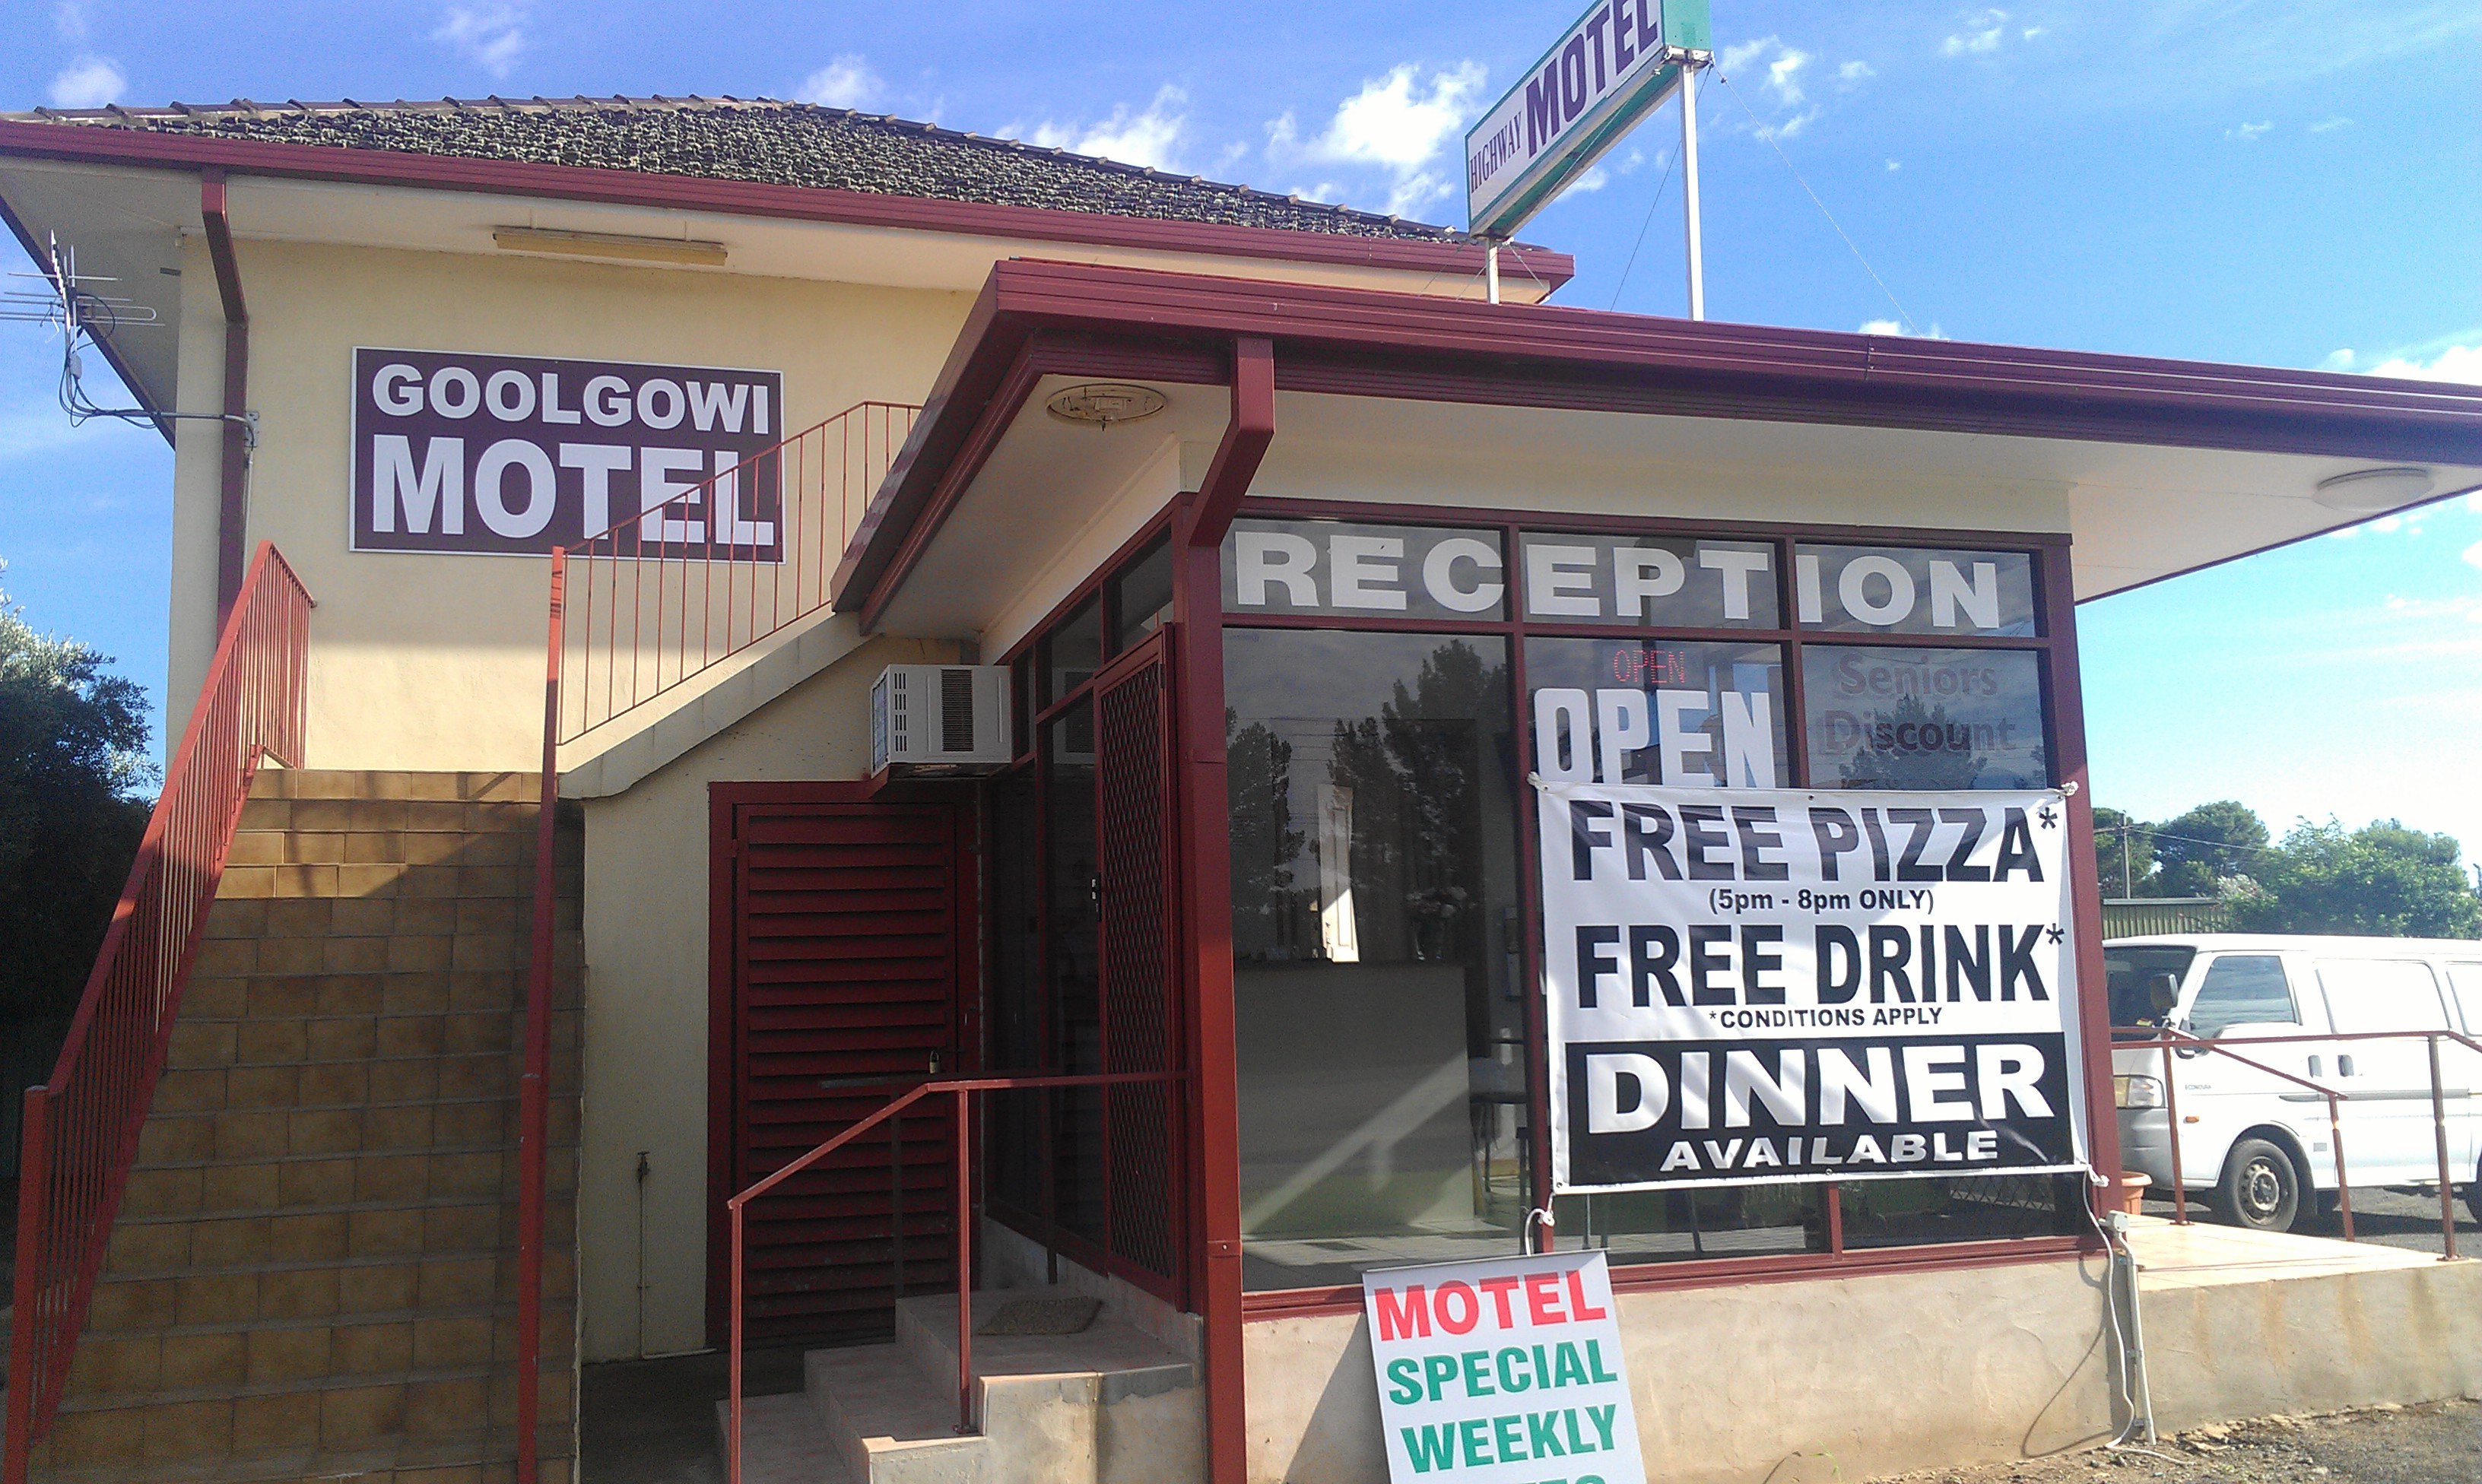 Royal Mail Hotel Goolgowi - Accommodation Batemans Bay